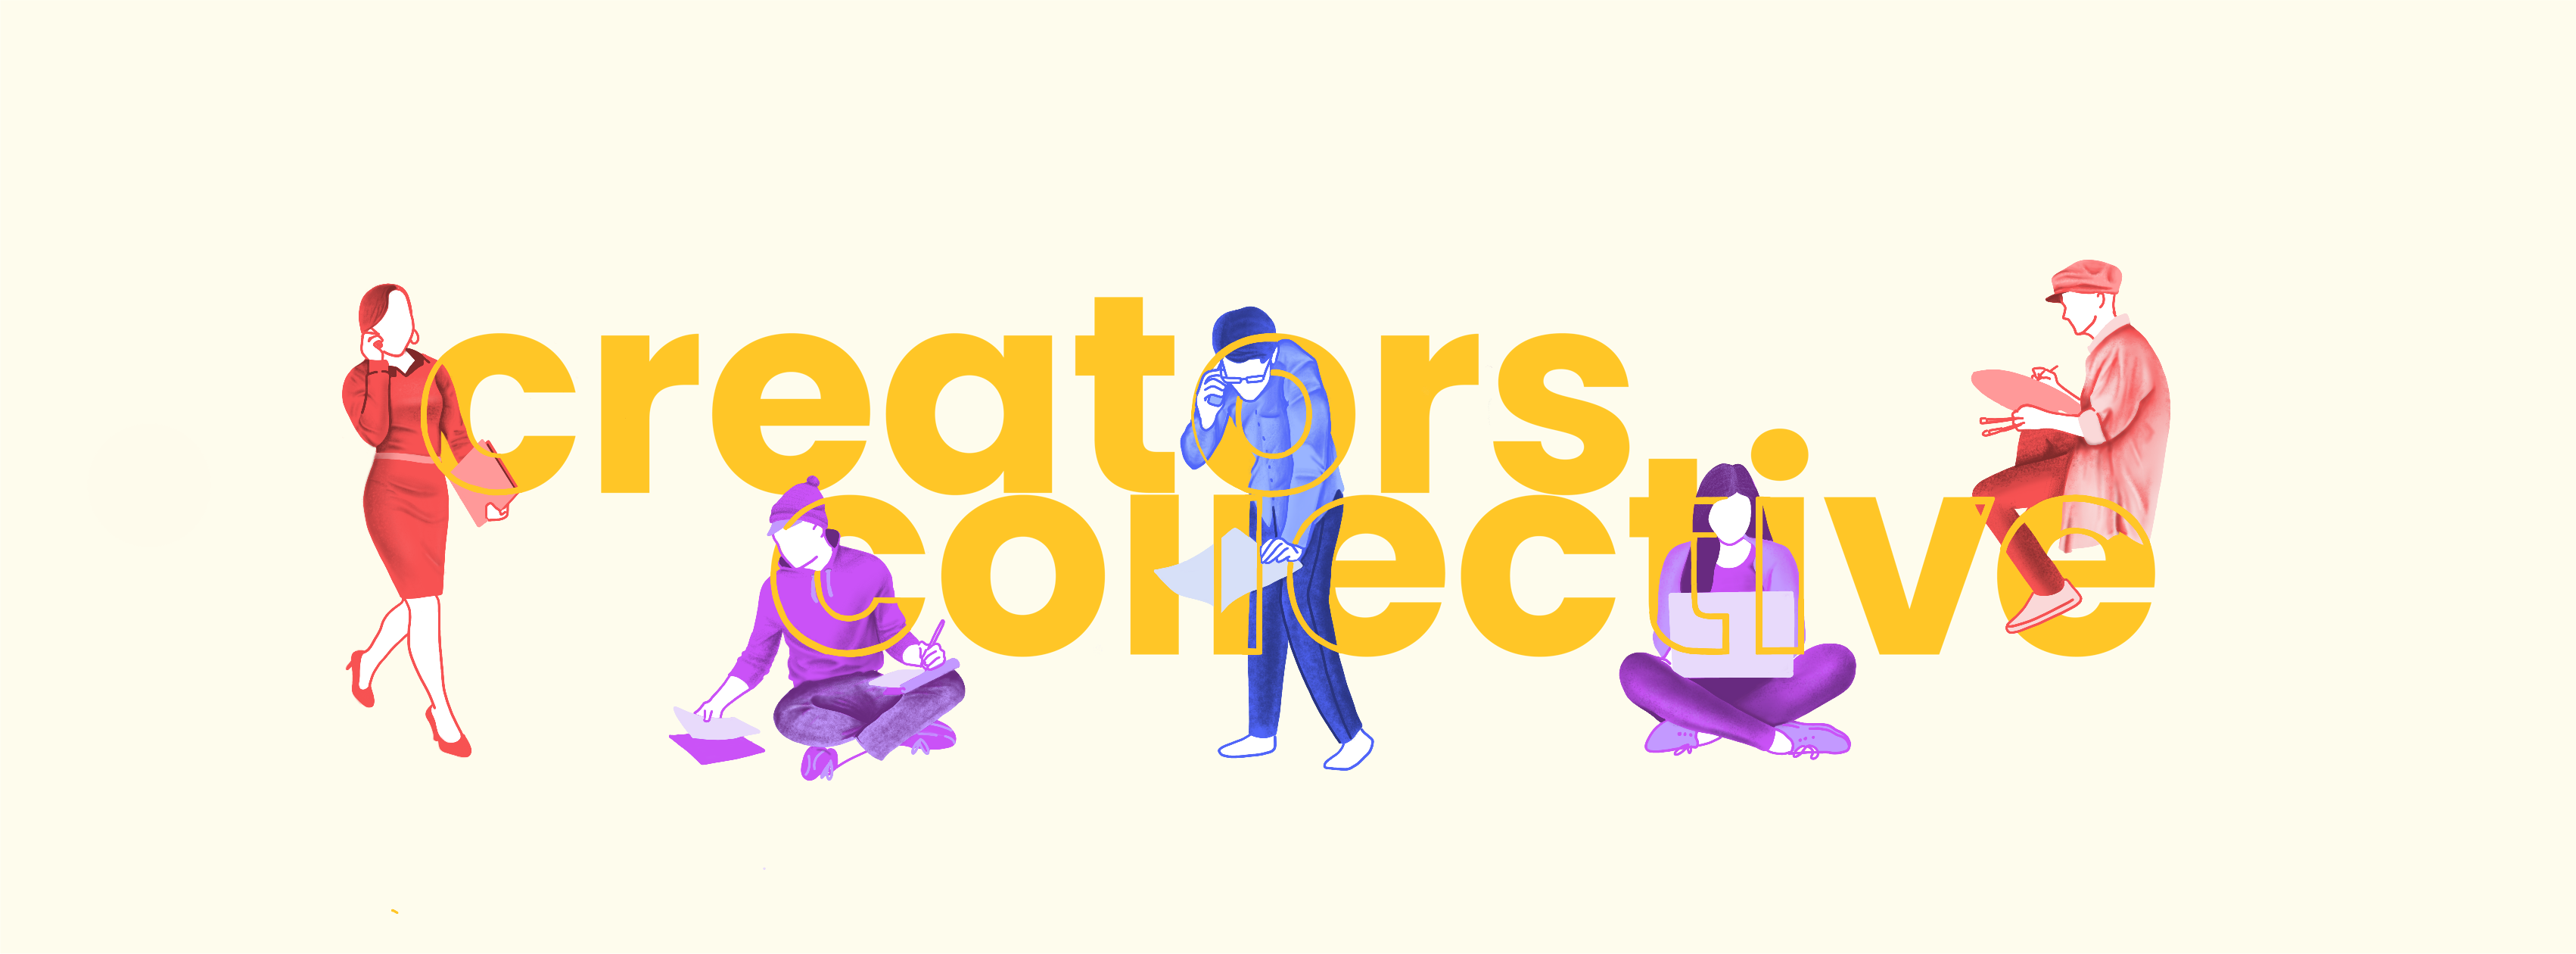 Creator Collective